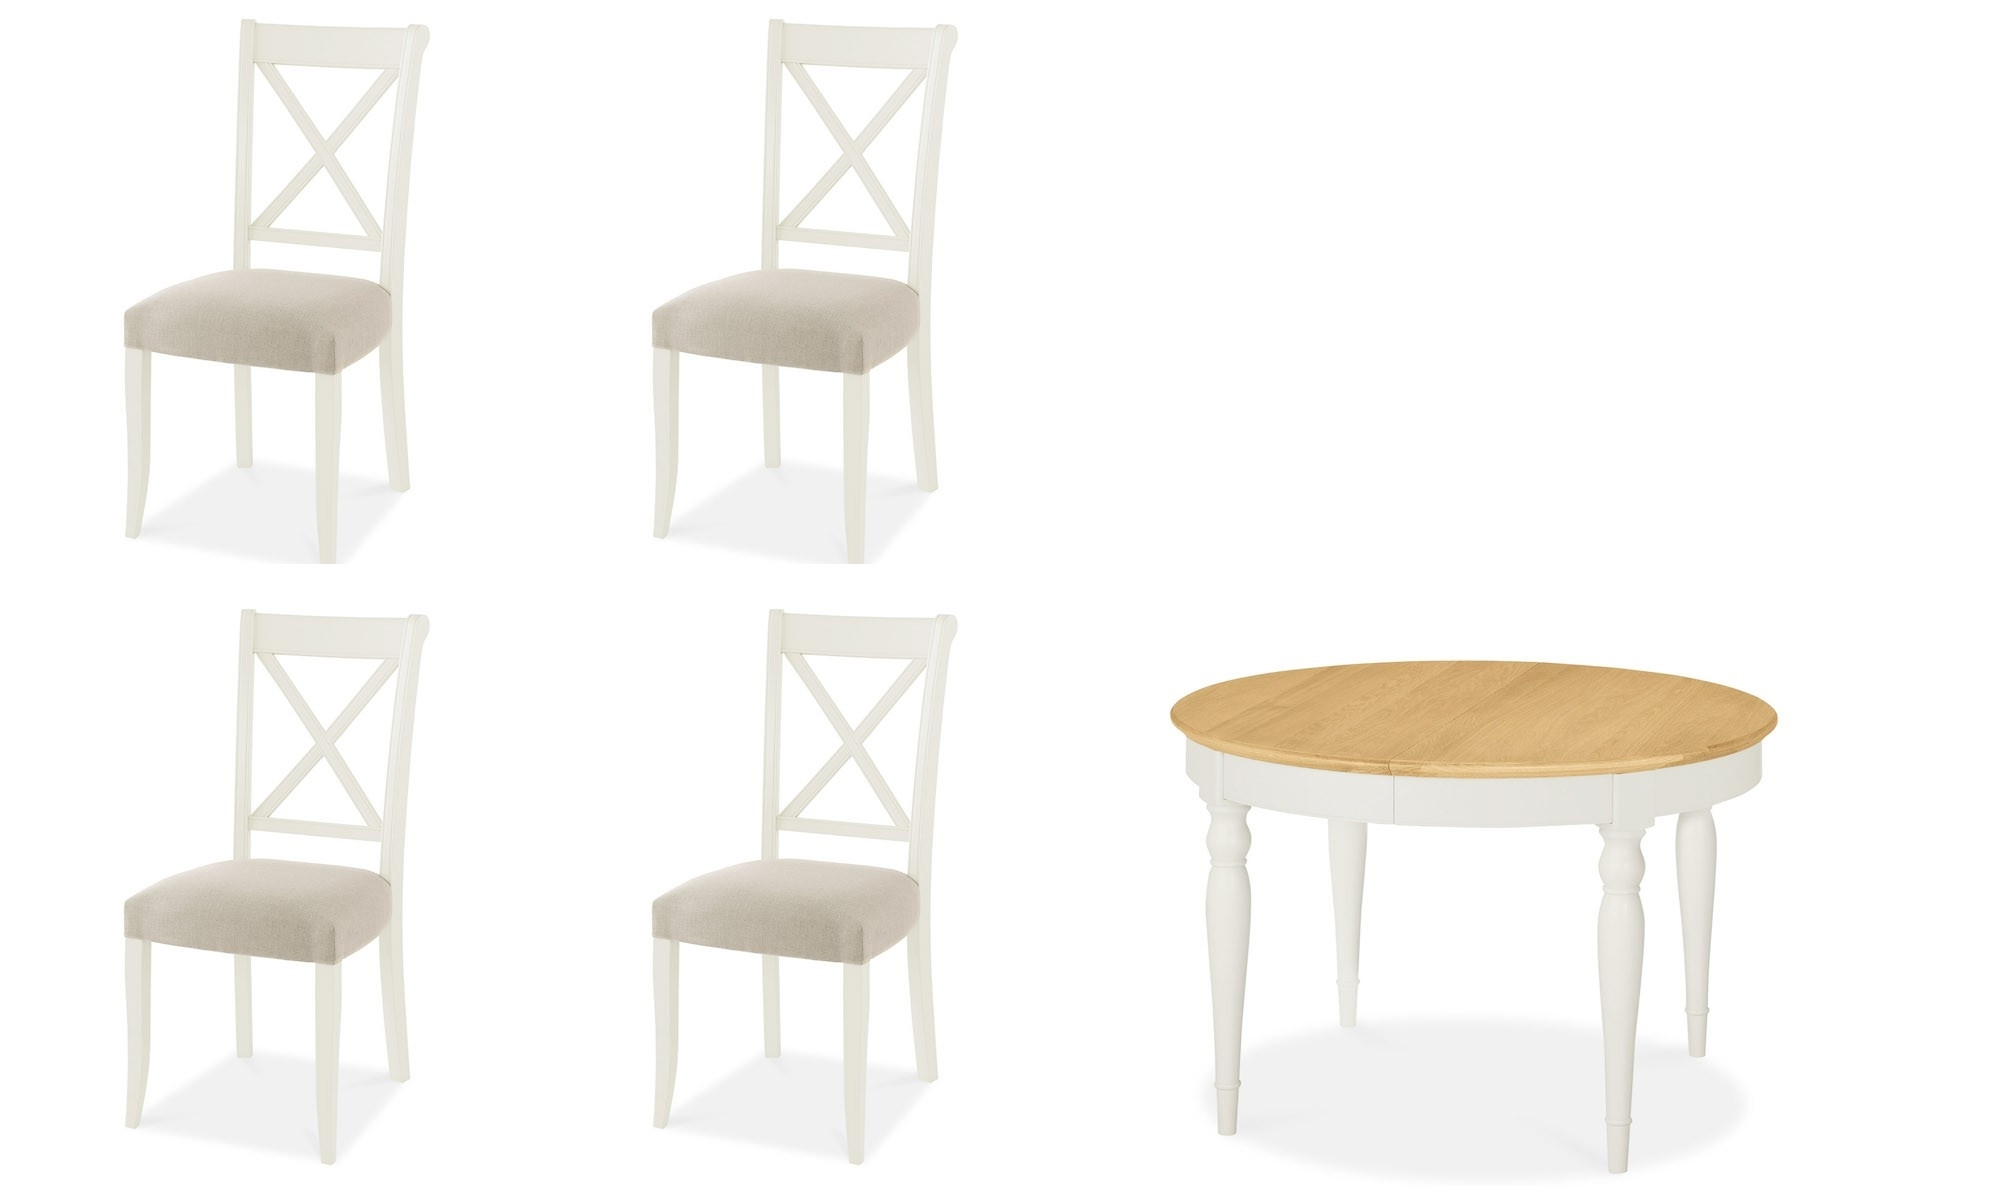 Georgie – Round Extending Dining Table And Chairs In Cream – Oak Top With Best And Newest Round Extendable Dining Tables And Chairs (View 15 of 25)